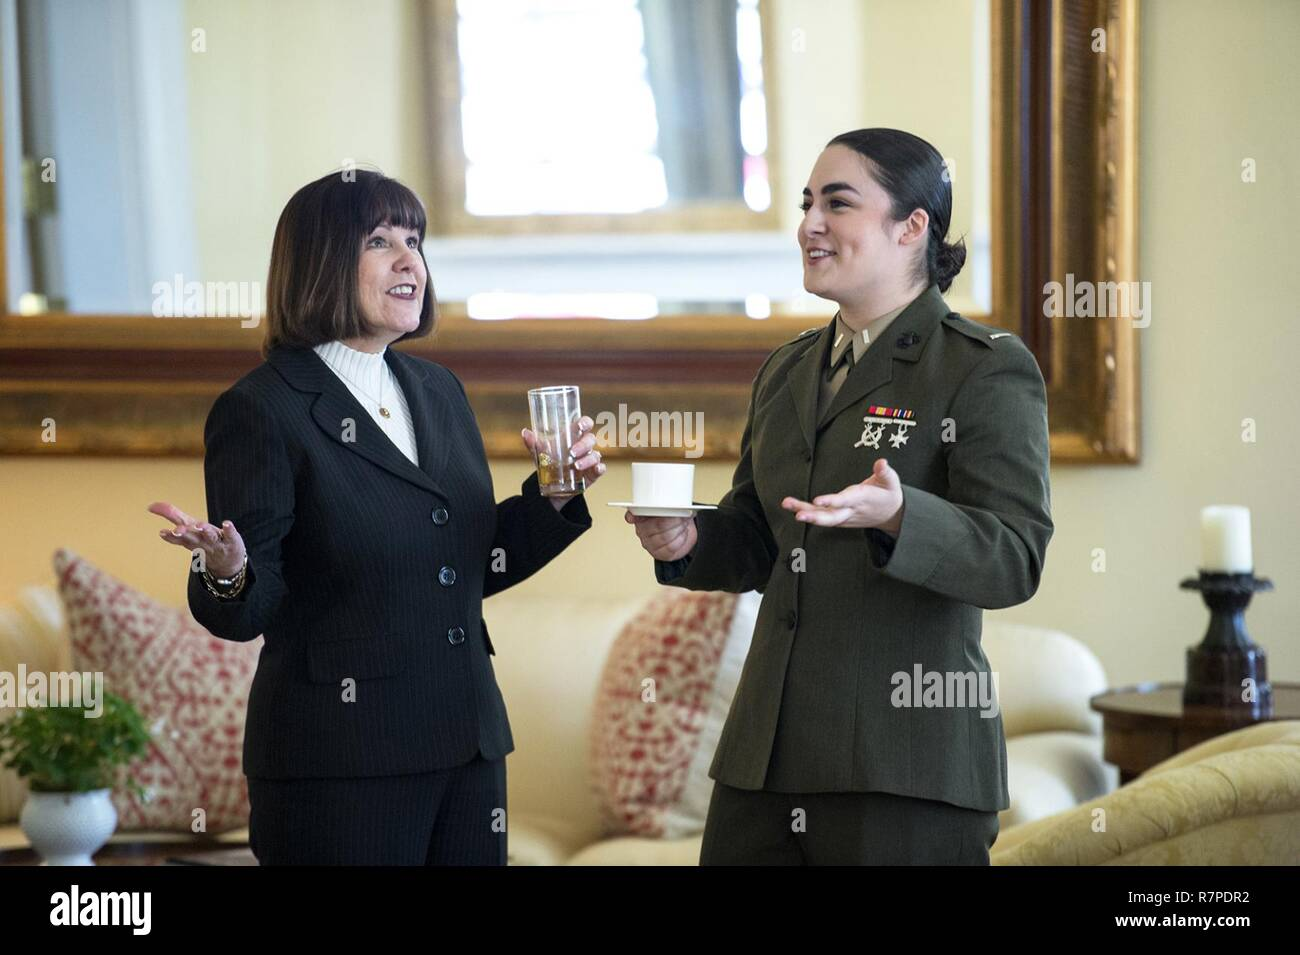 Second Lady Karen Pence Left And Marine Corps 1st Lt Talia Bastien React To Conversation At The Pence S Home In Washington D C March 23 2017 Pence Gathered Service Members From Every Branch Slow burn talia billig, nic hard & becca stevens, arrangers (becca stevens featuring jacob collier, mark lettieri, justin stanton, jordan perlson, nic hard, keita ogawa, marcelo woloski & nate. alamy